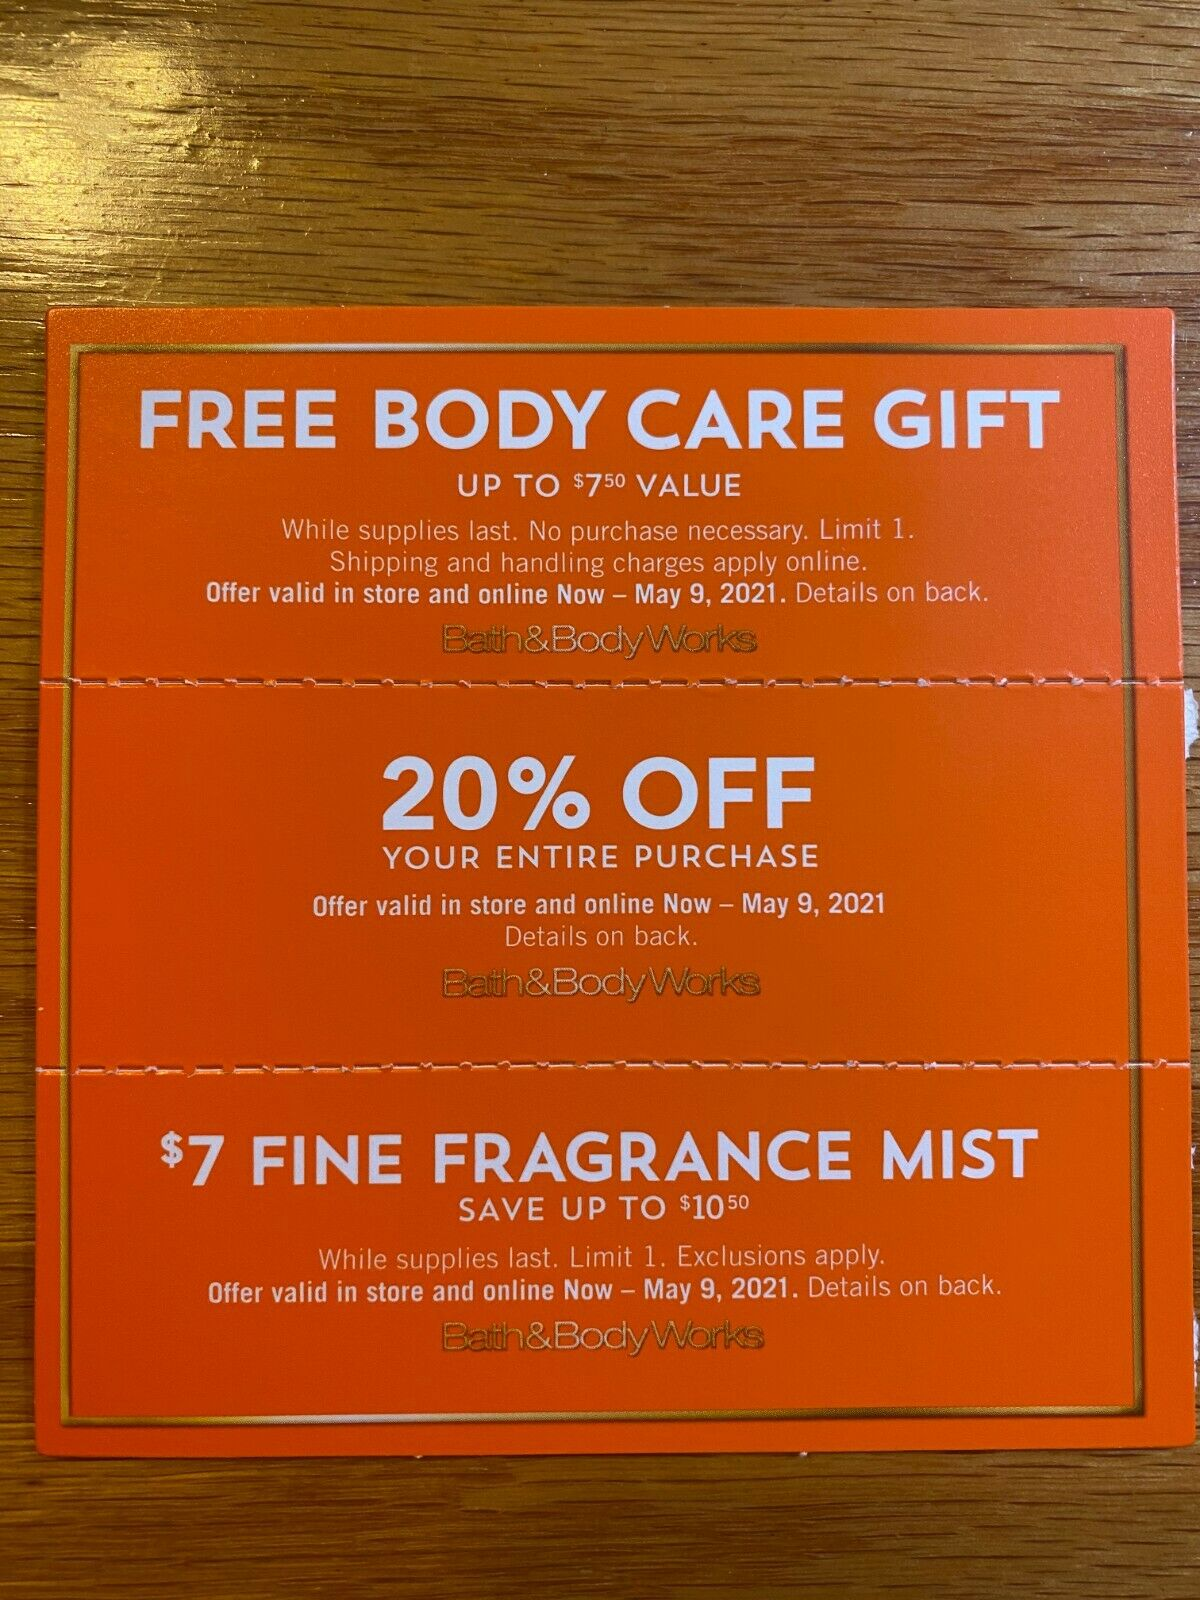 BATH BODY WORKS COUPON 20 OFF ENTIRE PURCHASE GIFT - $13.00